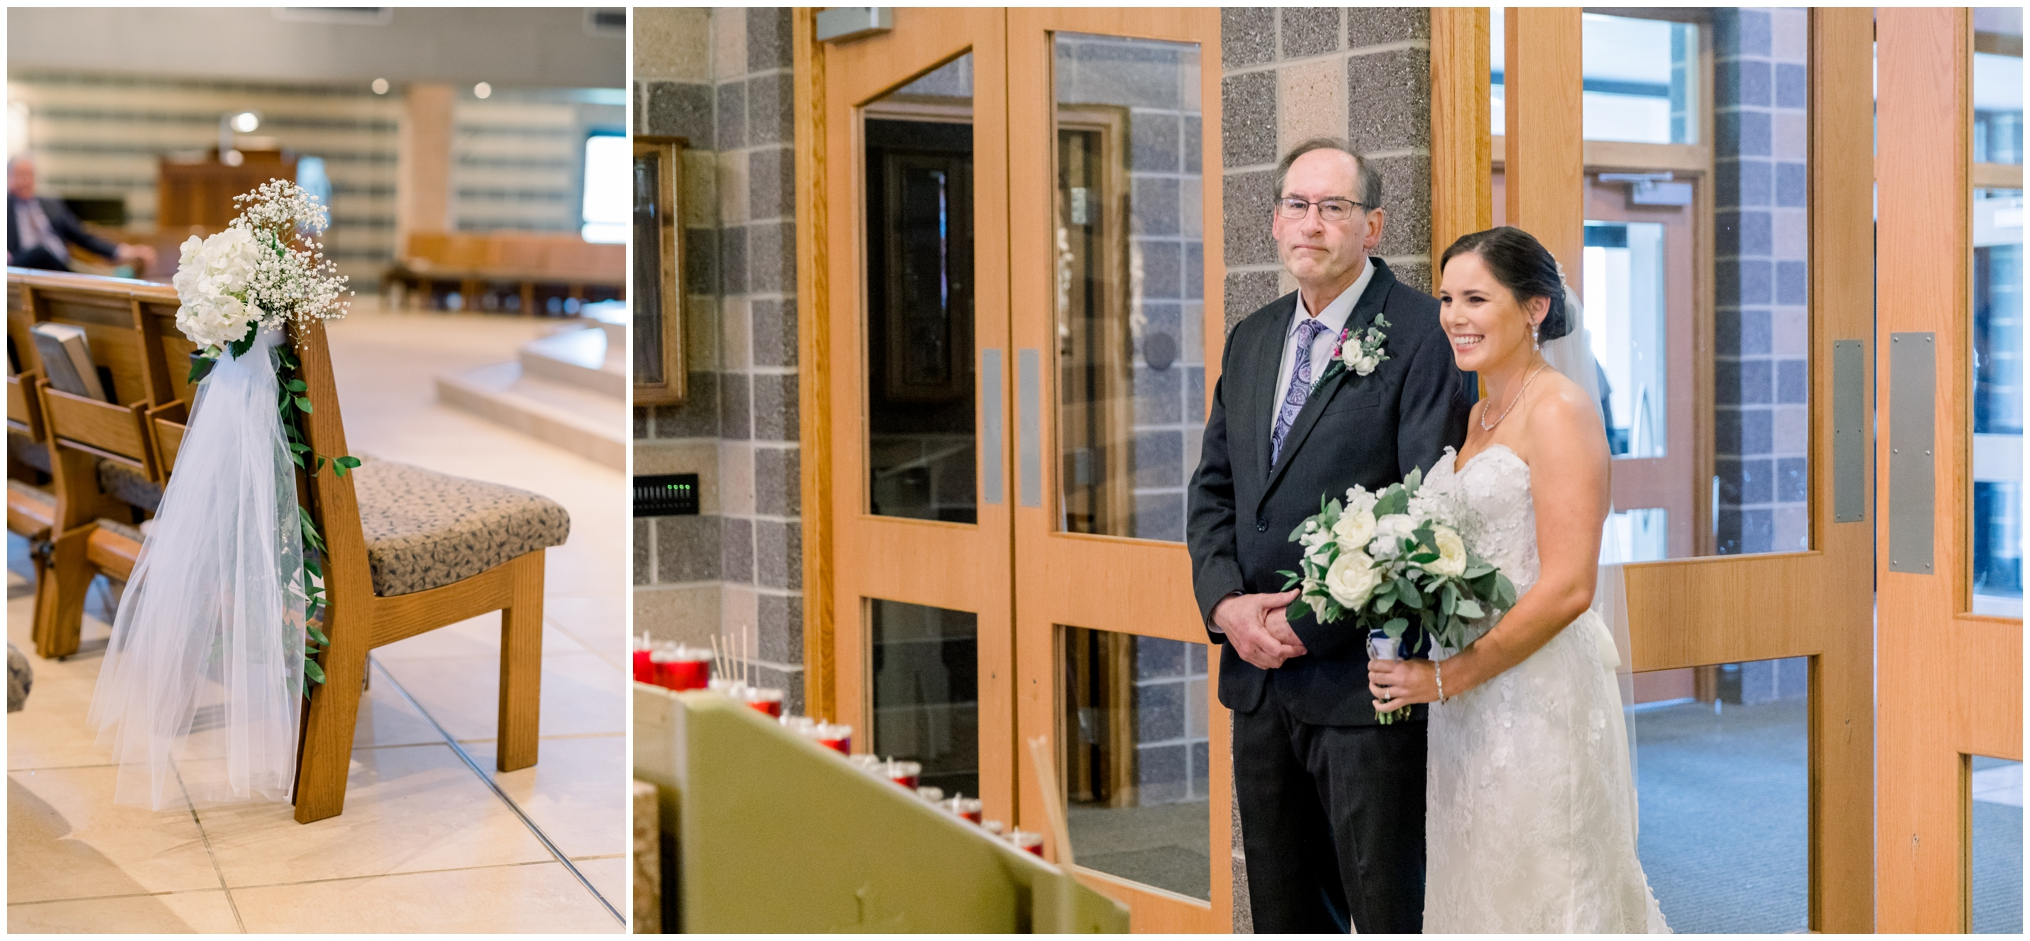 Krista Brackin Photography | April Wedding at The Carriage House at Rockwood Park_0042.jpg